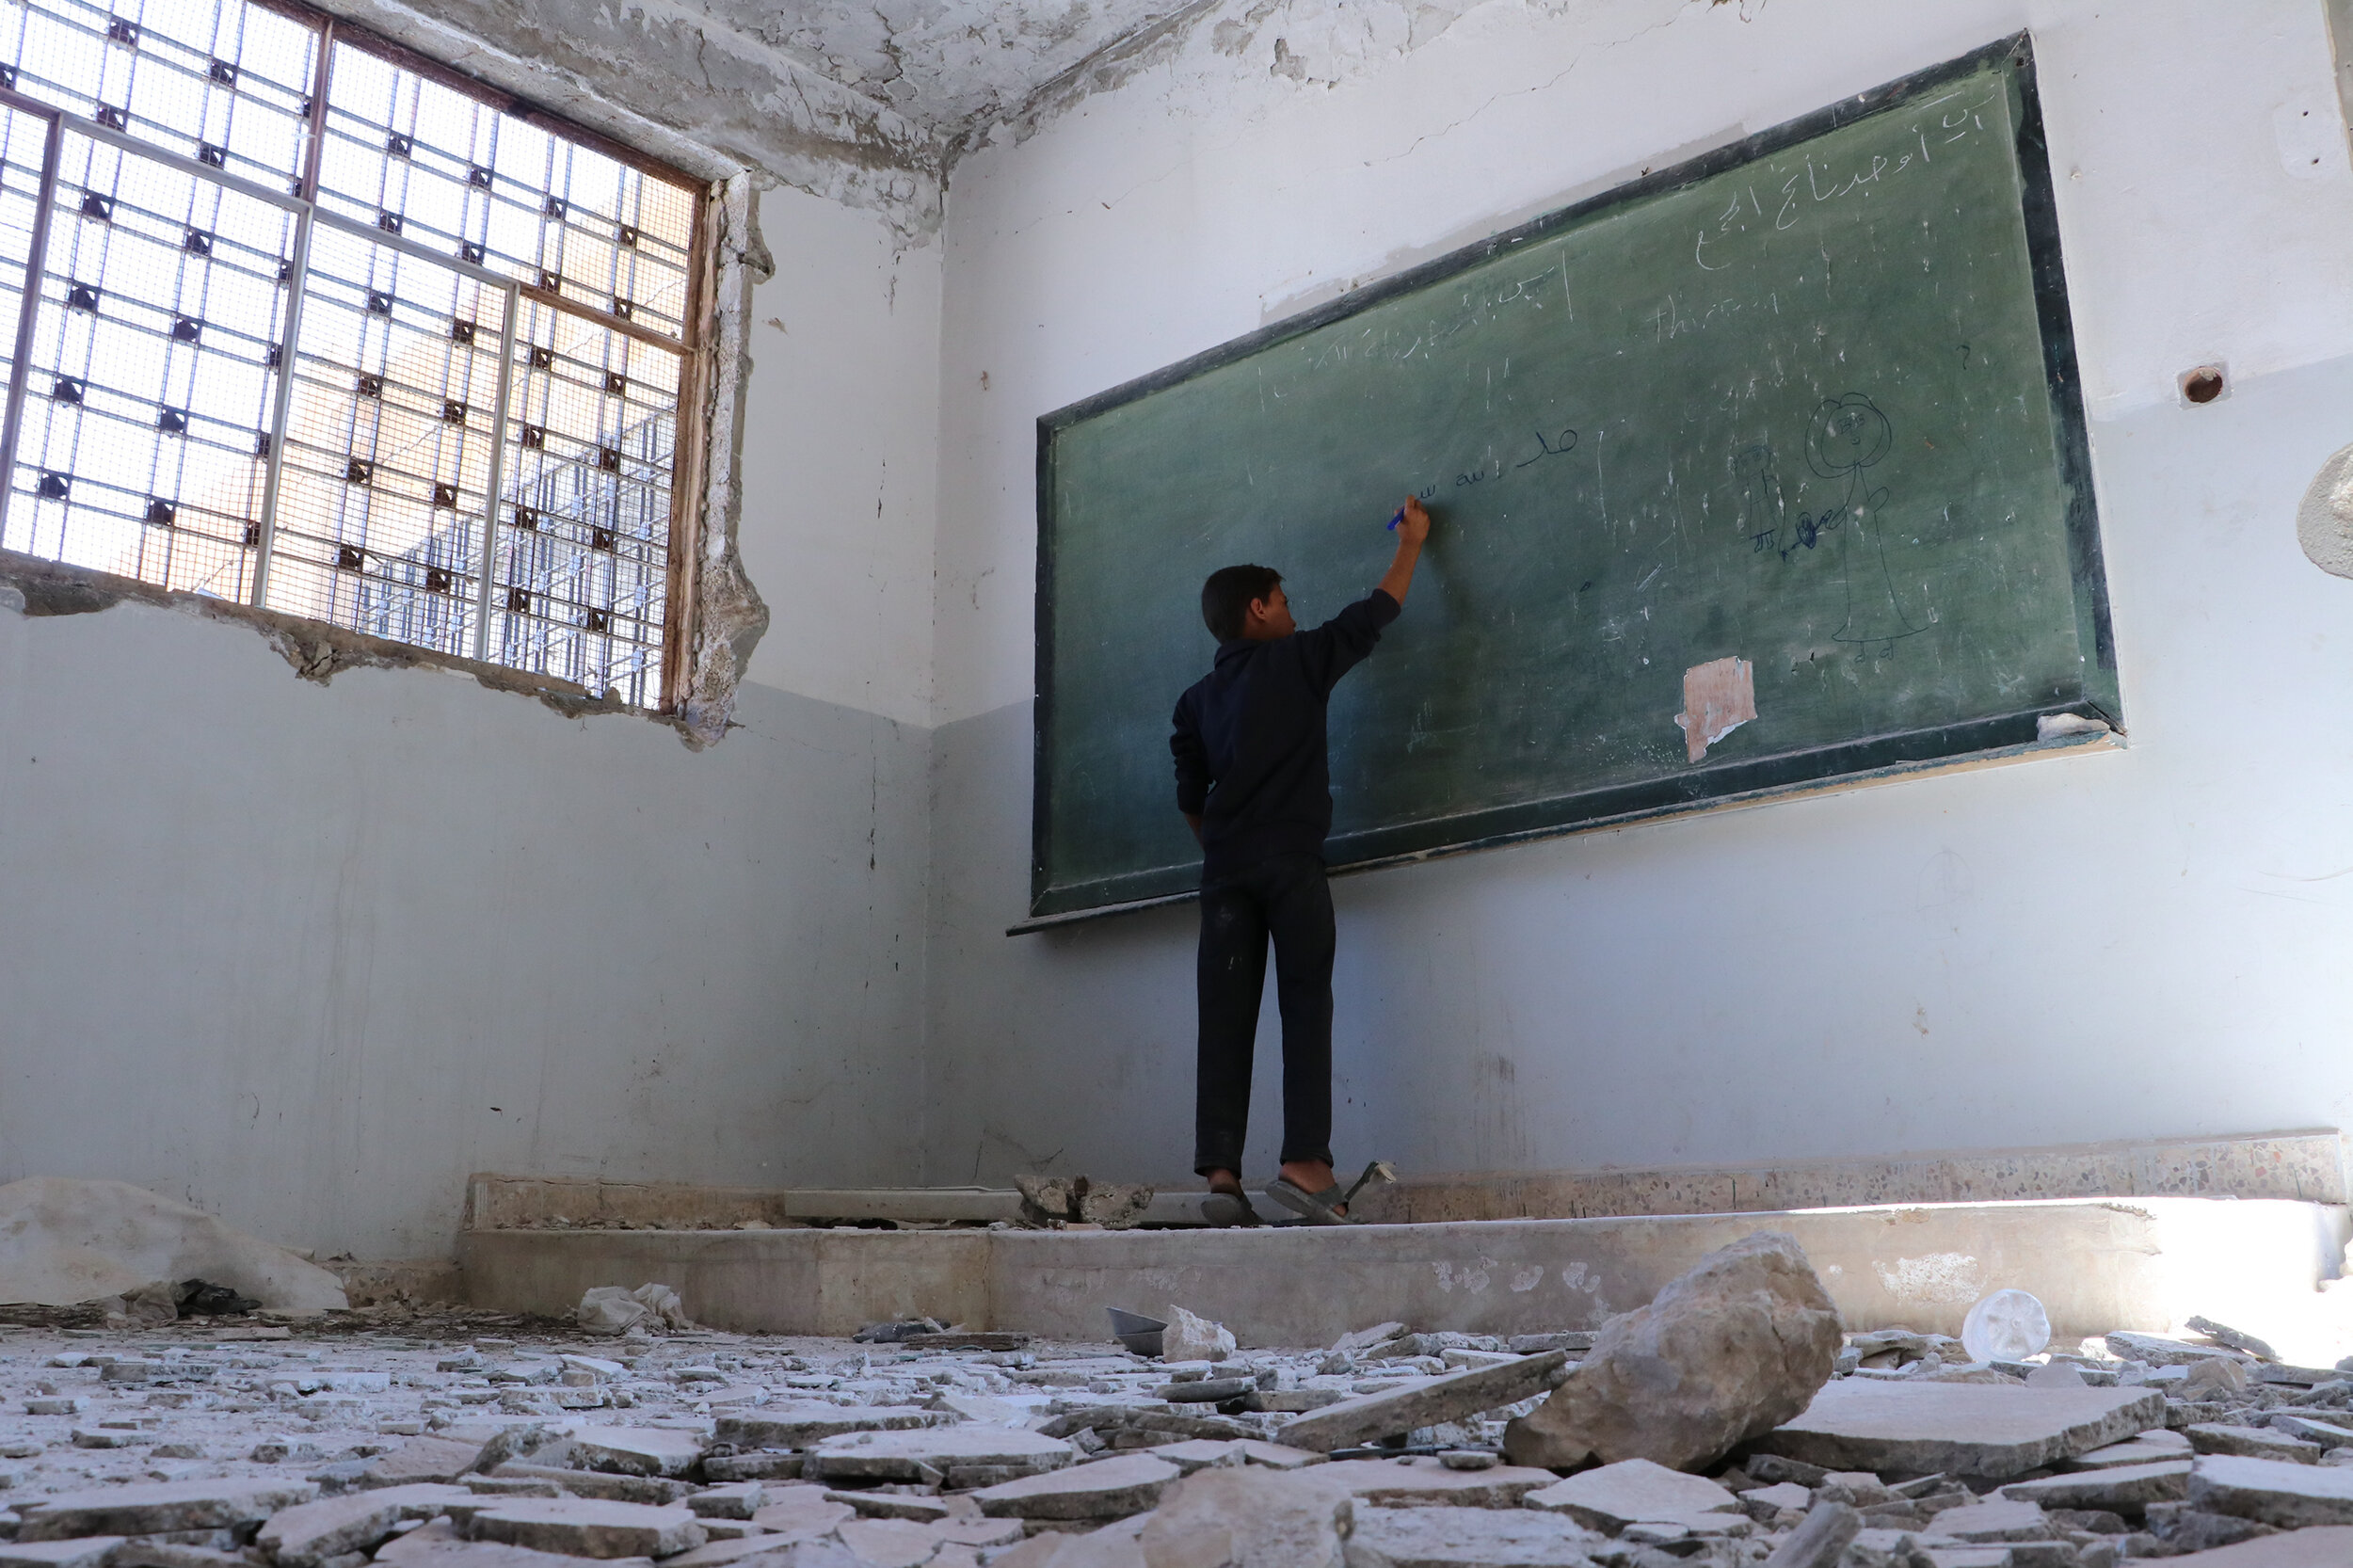 A boy writes on the board of a damaged classroom in Idlib governorate, Syria in July 2019. © 2019 Save the Children's partner in Syria, Hurras Network.